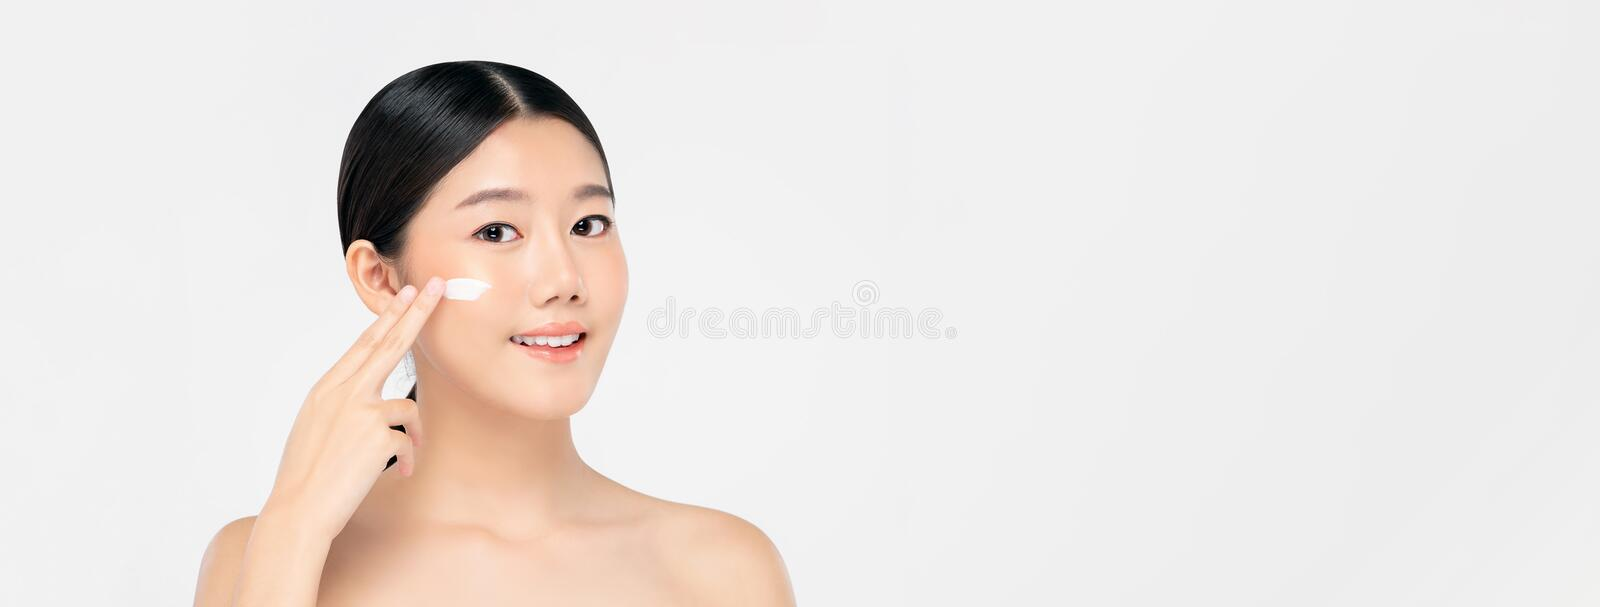 3 066 Face Cream Banner Photos Free Royalty Free Stock Photos From Dreamstime